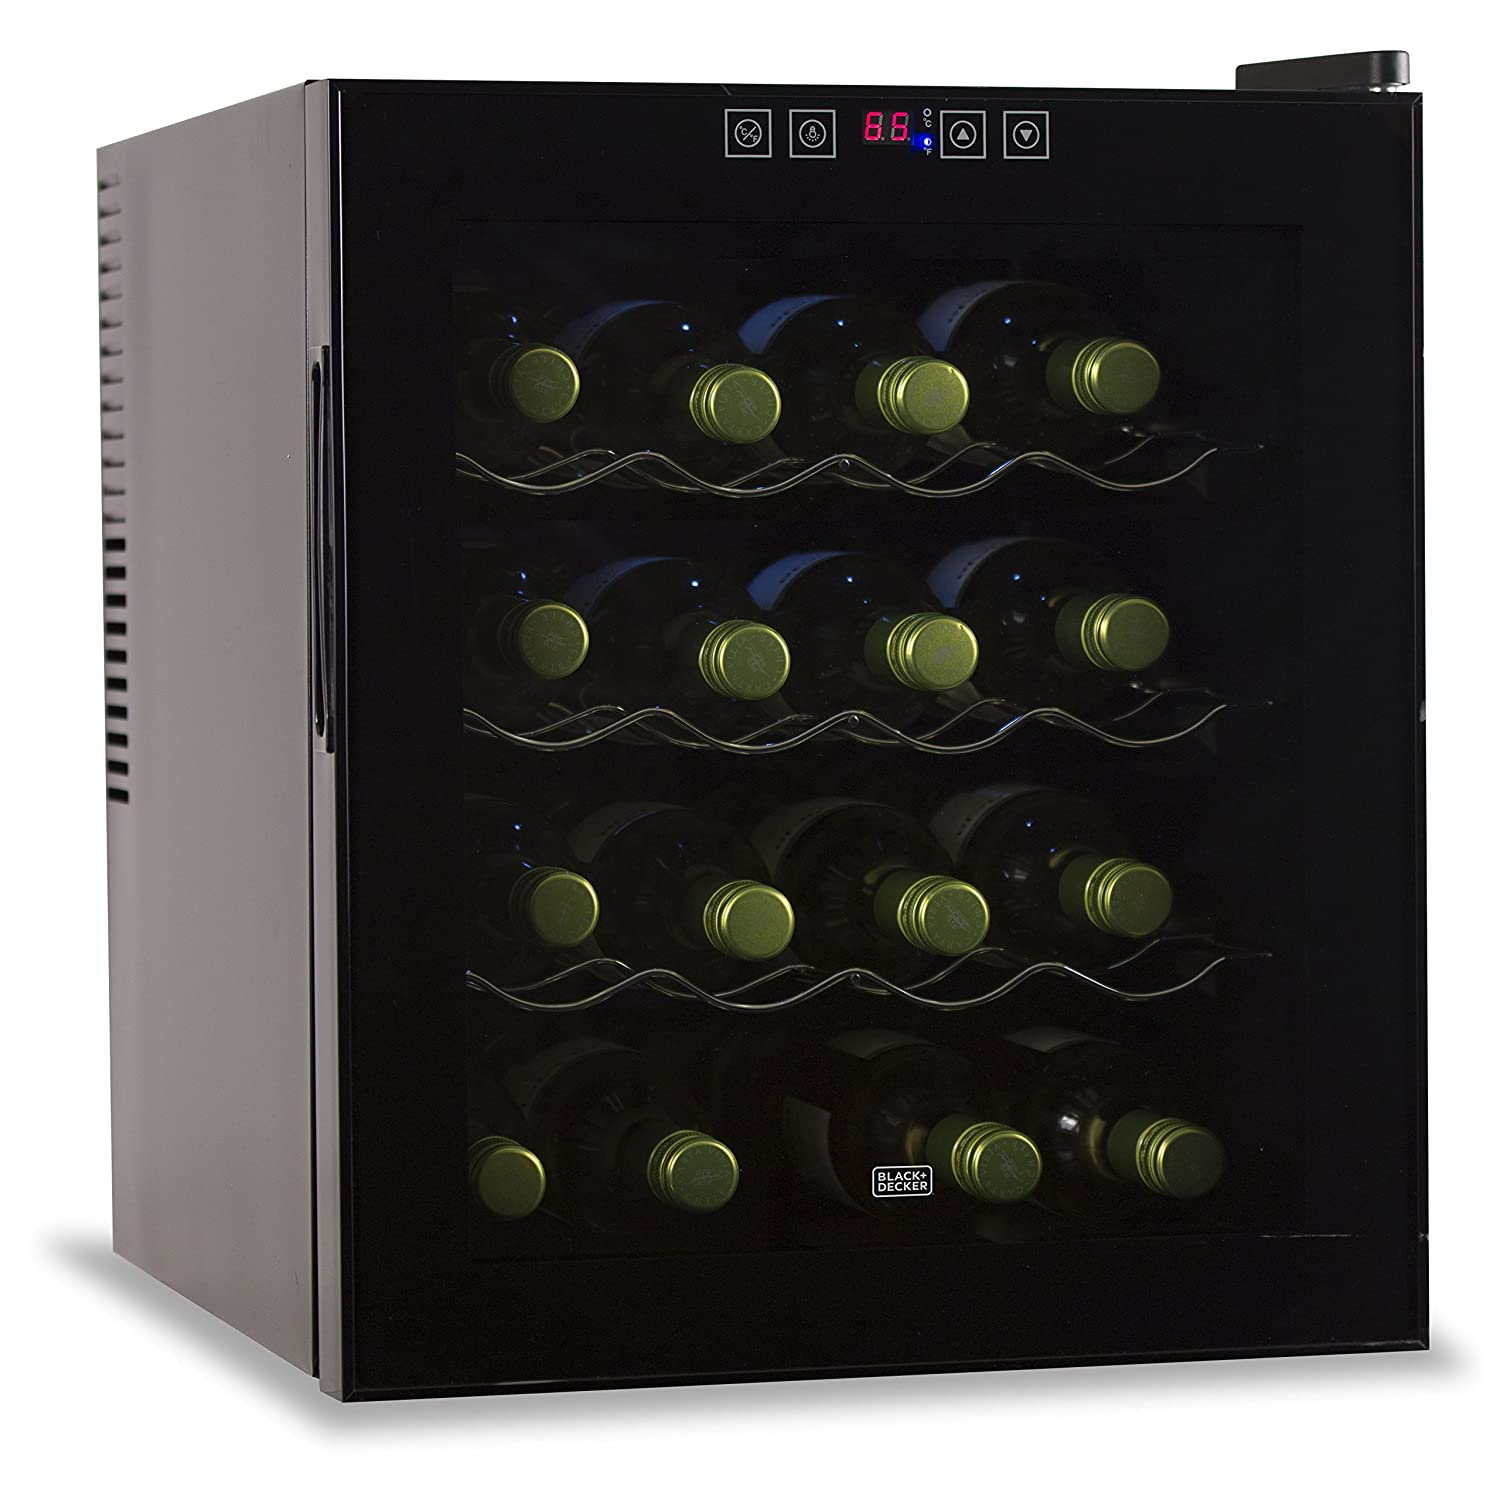 16 Bottle Capacity Thermoelectric Wine Cellar - Electronic Touch Controls & LED Display - Black Cabinet with UV Glass Door & Interior Light by BLACK+DECKER BWT16TB